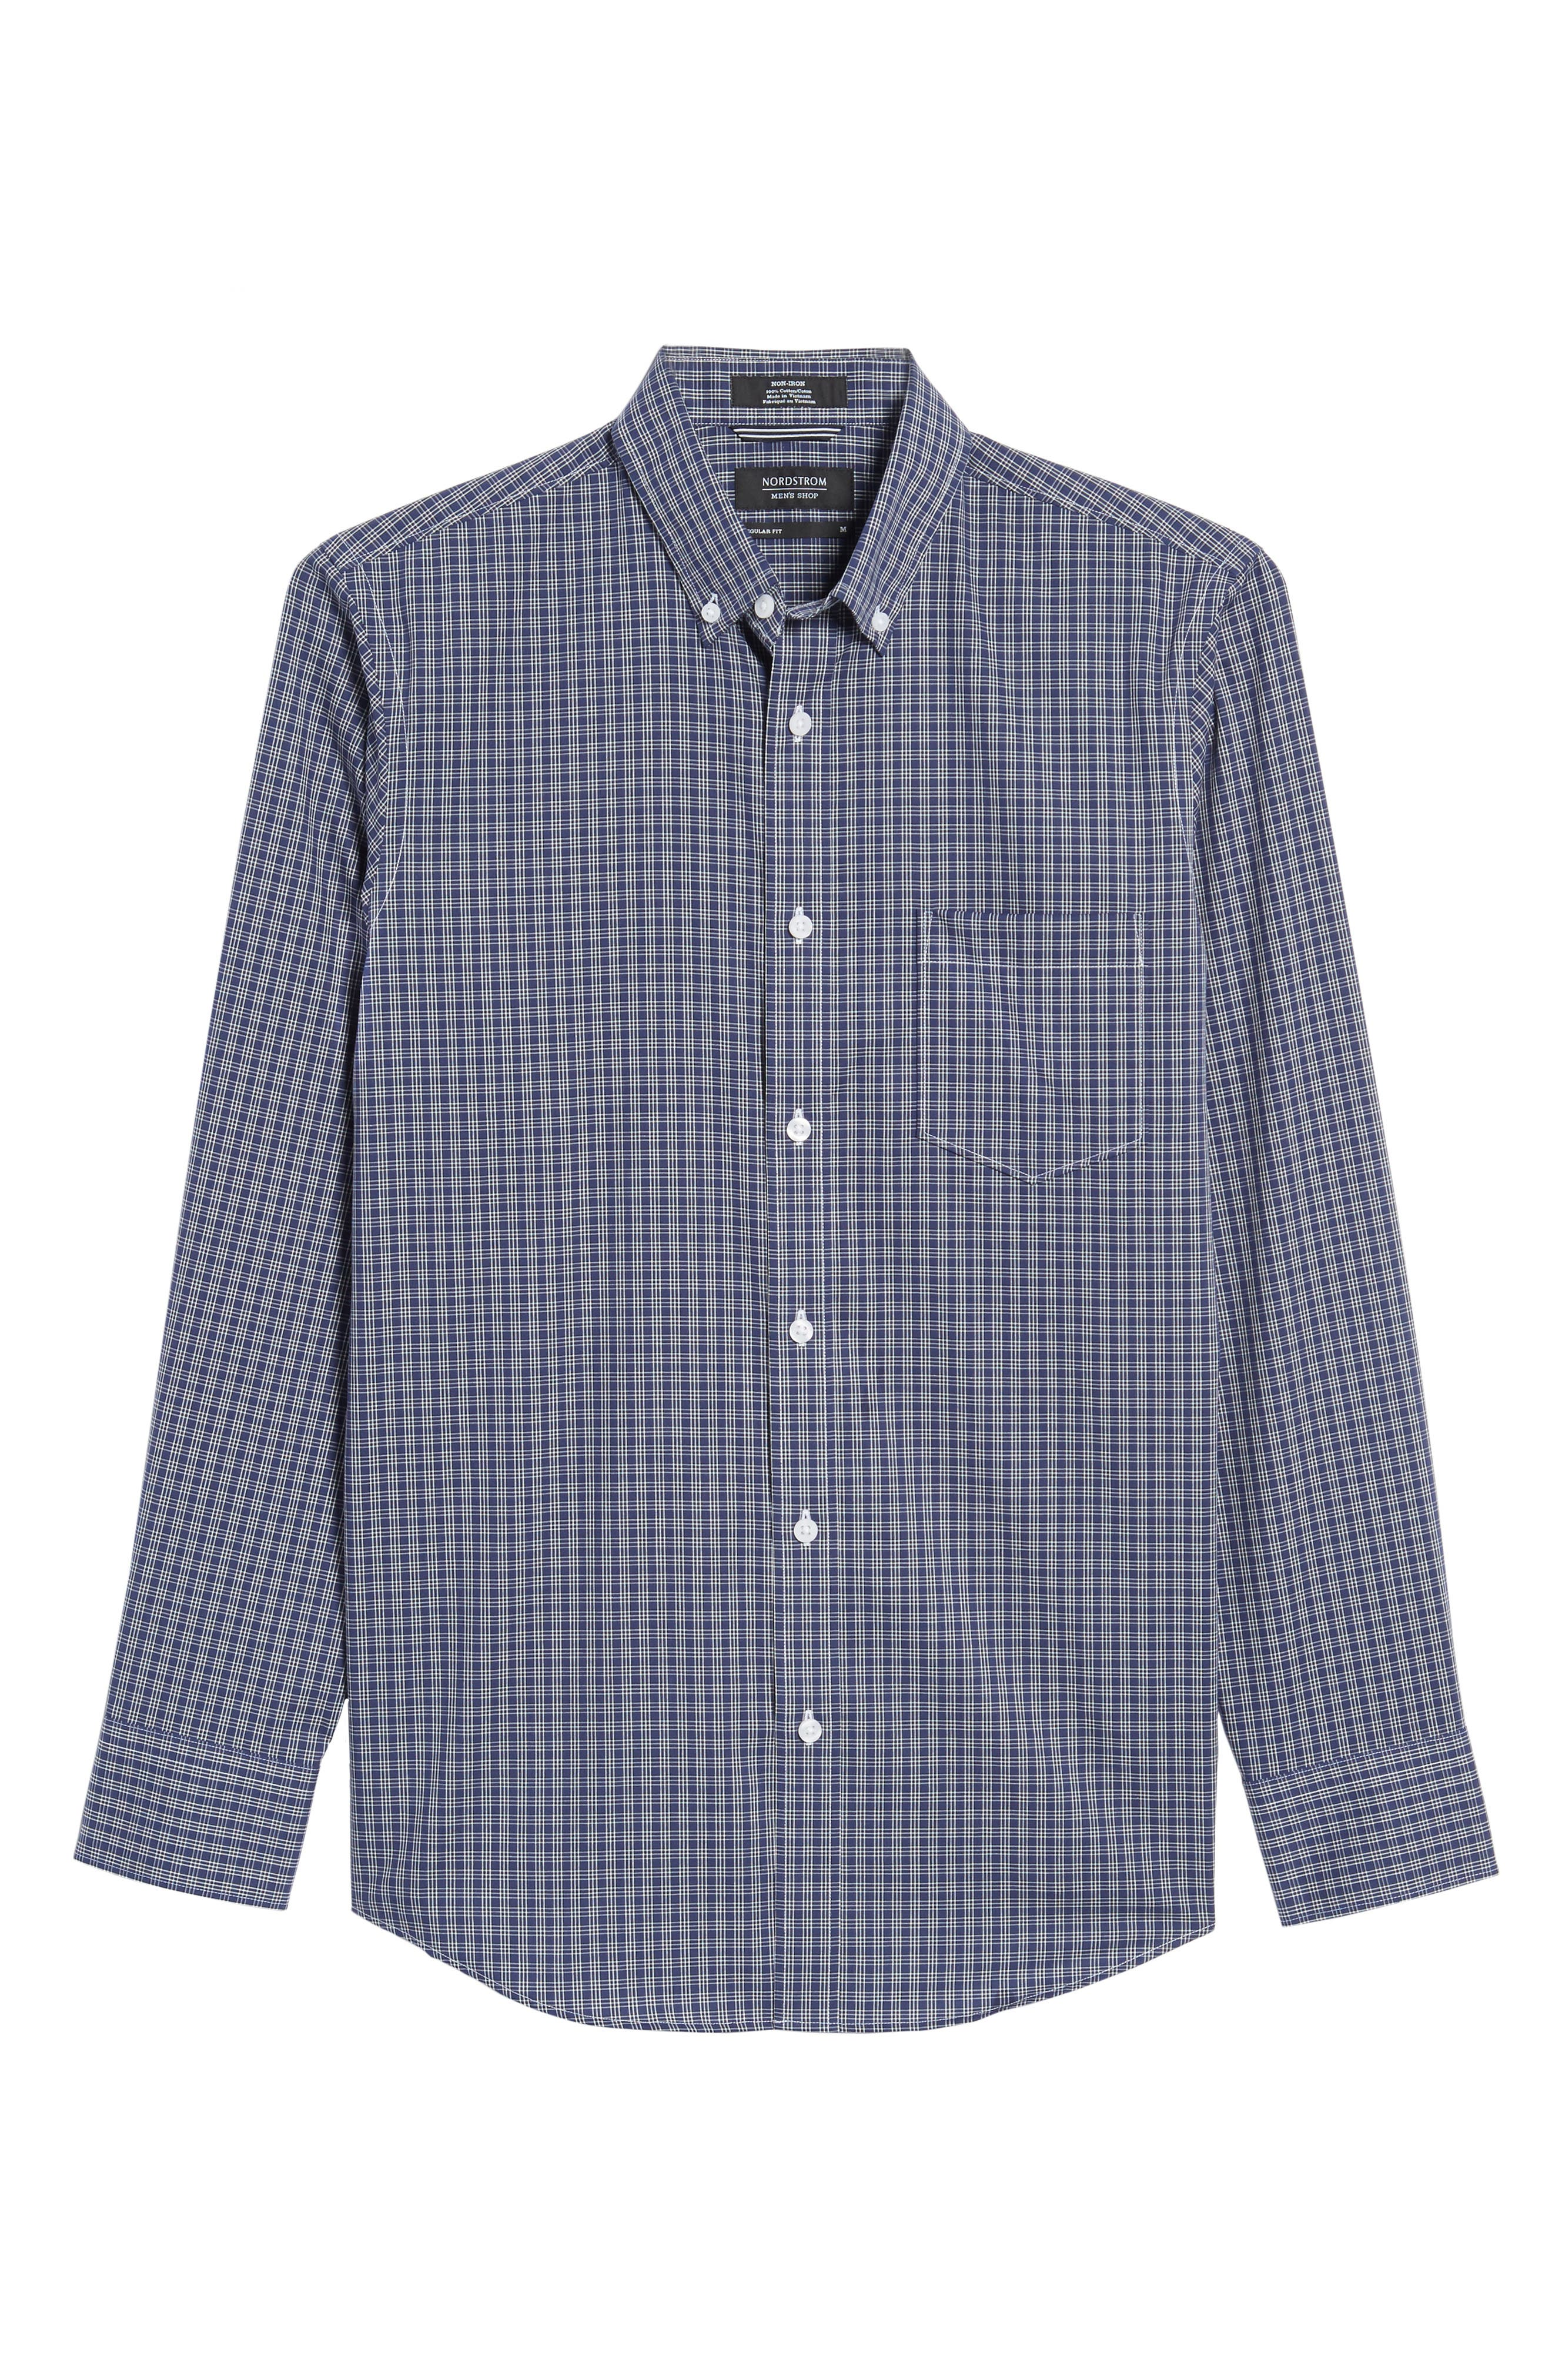 Regular Fit Non-Iron Mini Check Sport Shirt,                             Alternate thumbnail 6, color,                             410